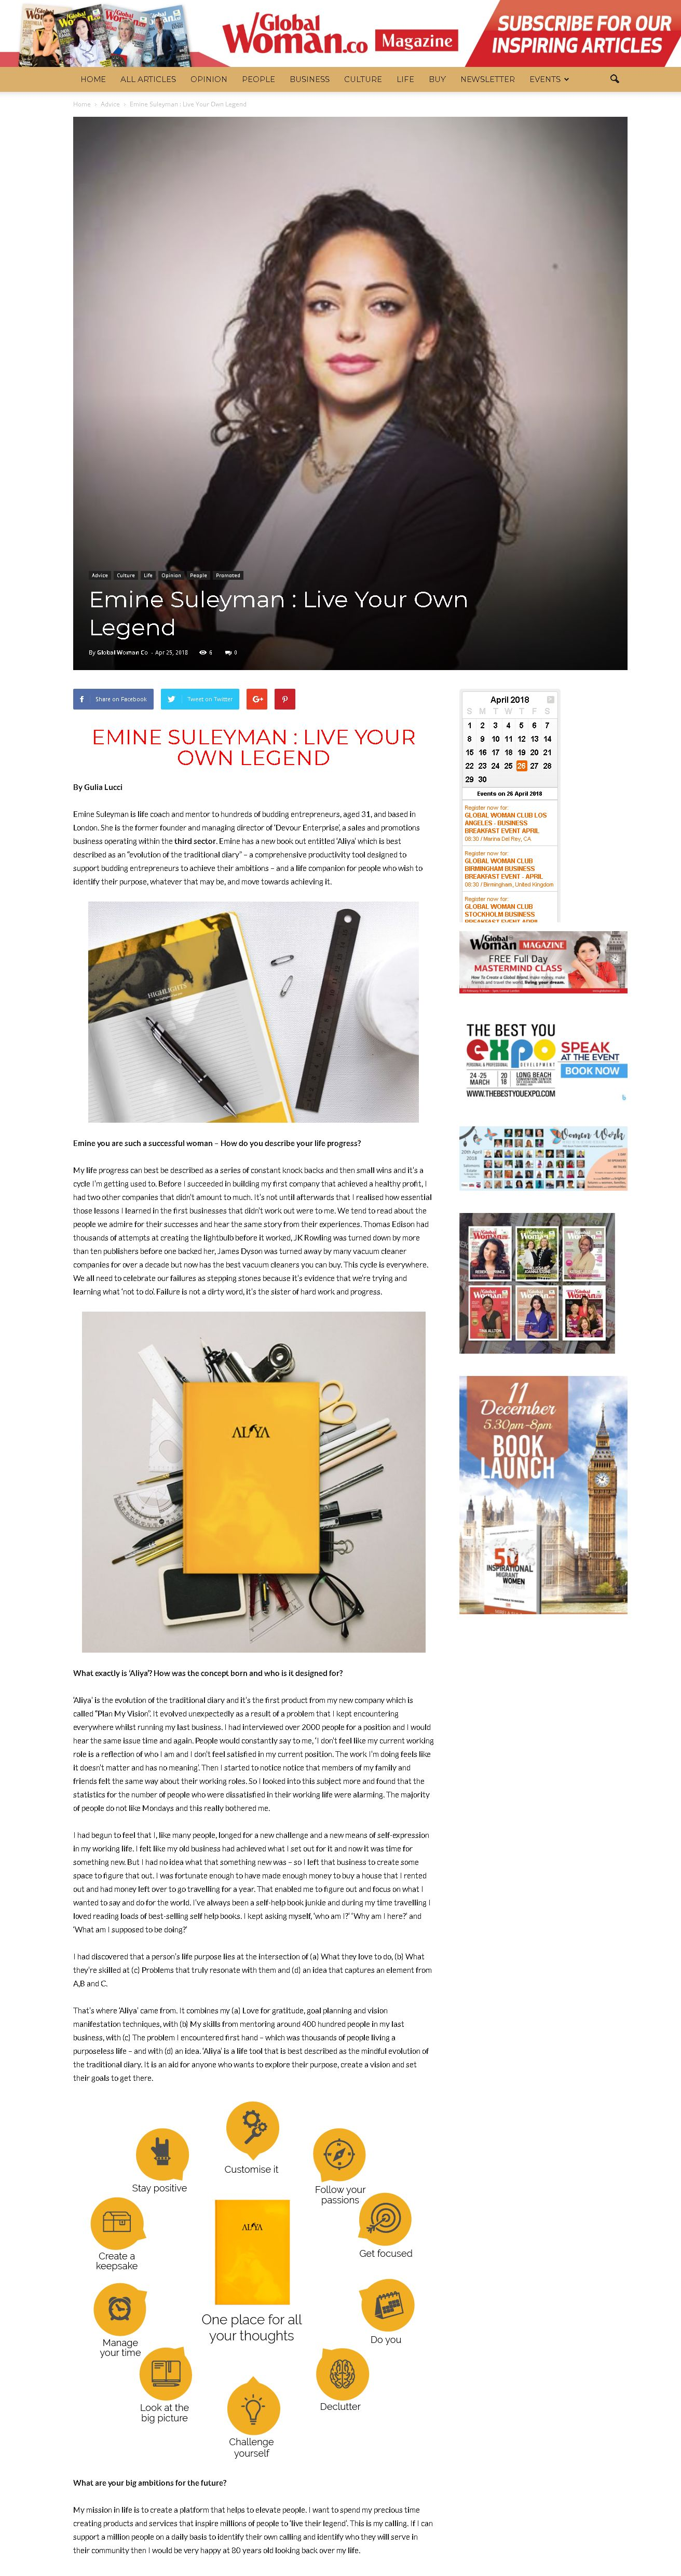 Palamedes Pr, the book PR agency